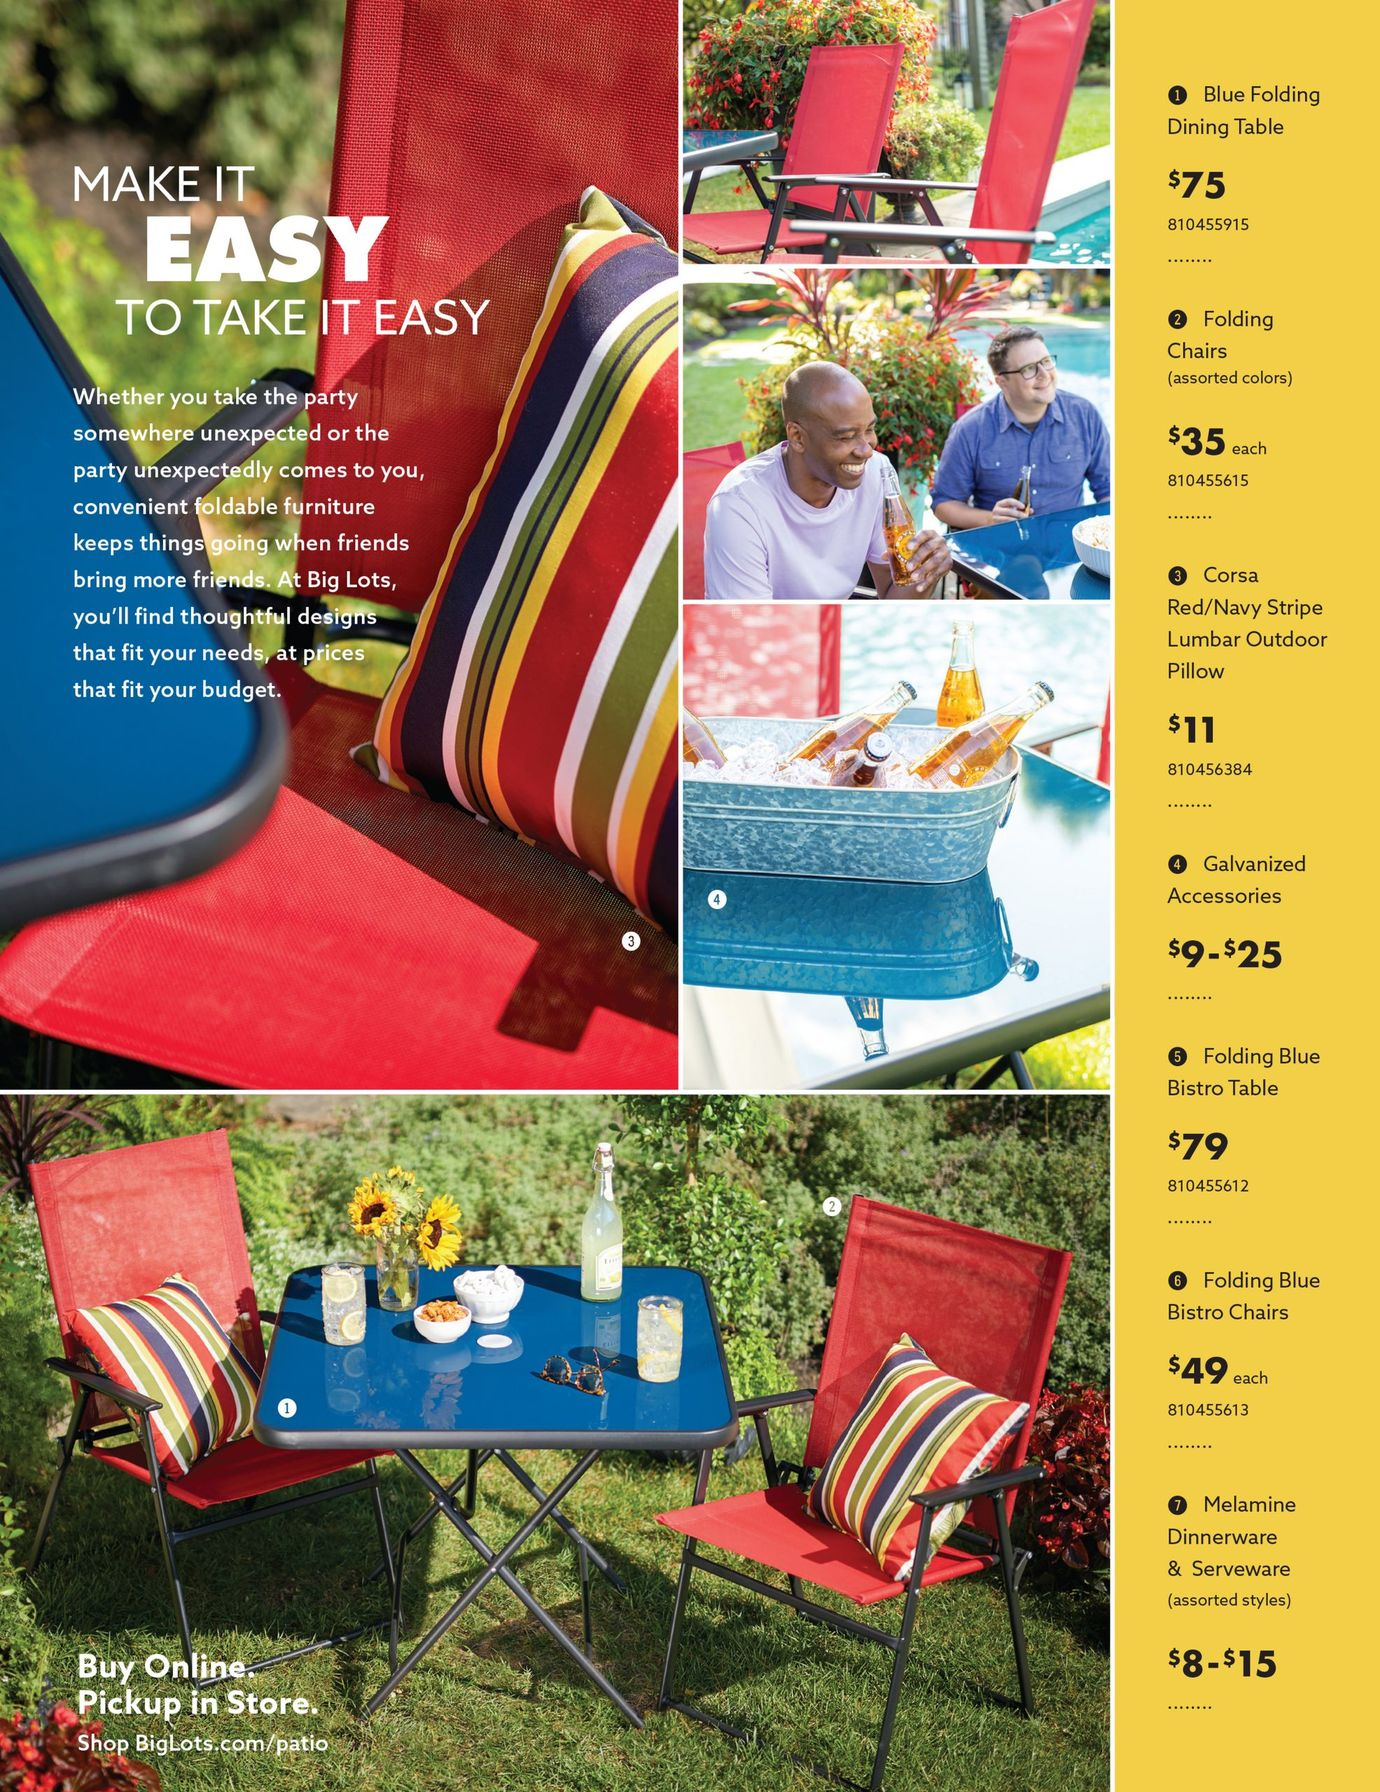 Big Lots Weekly January 19 - July 31, 2020 Page 28